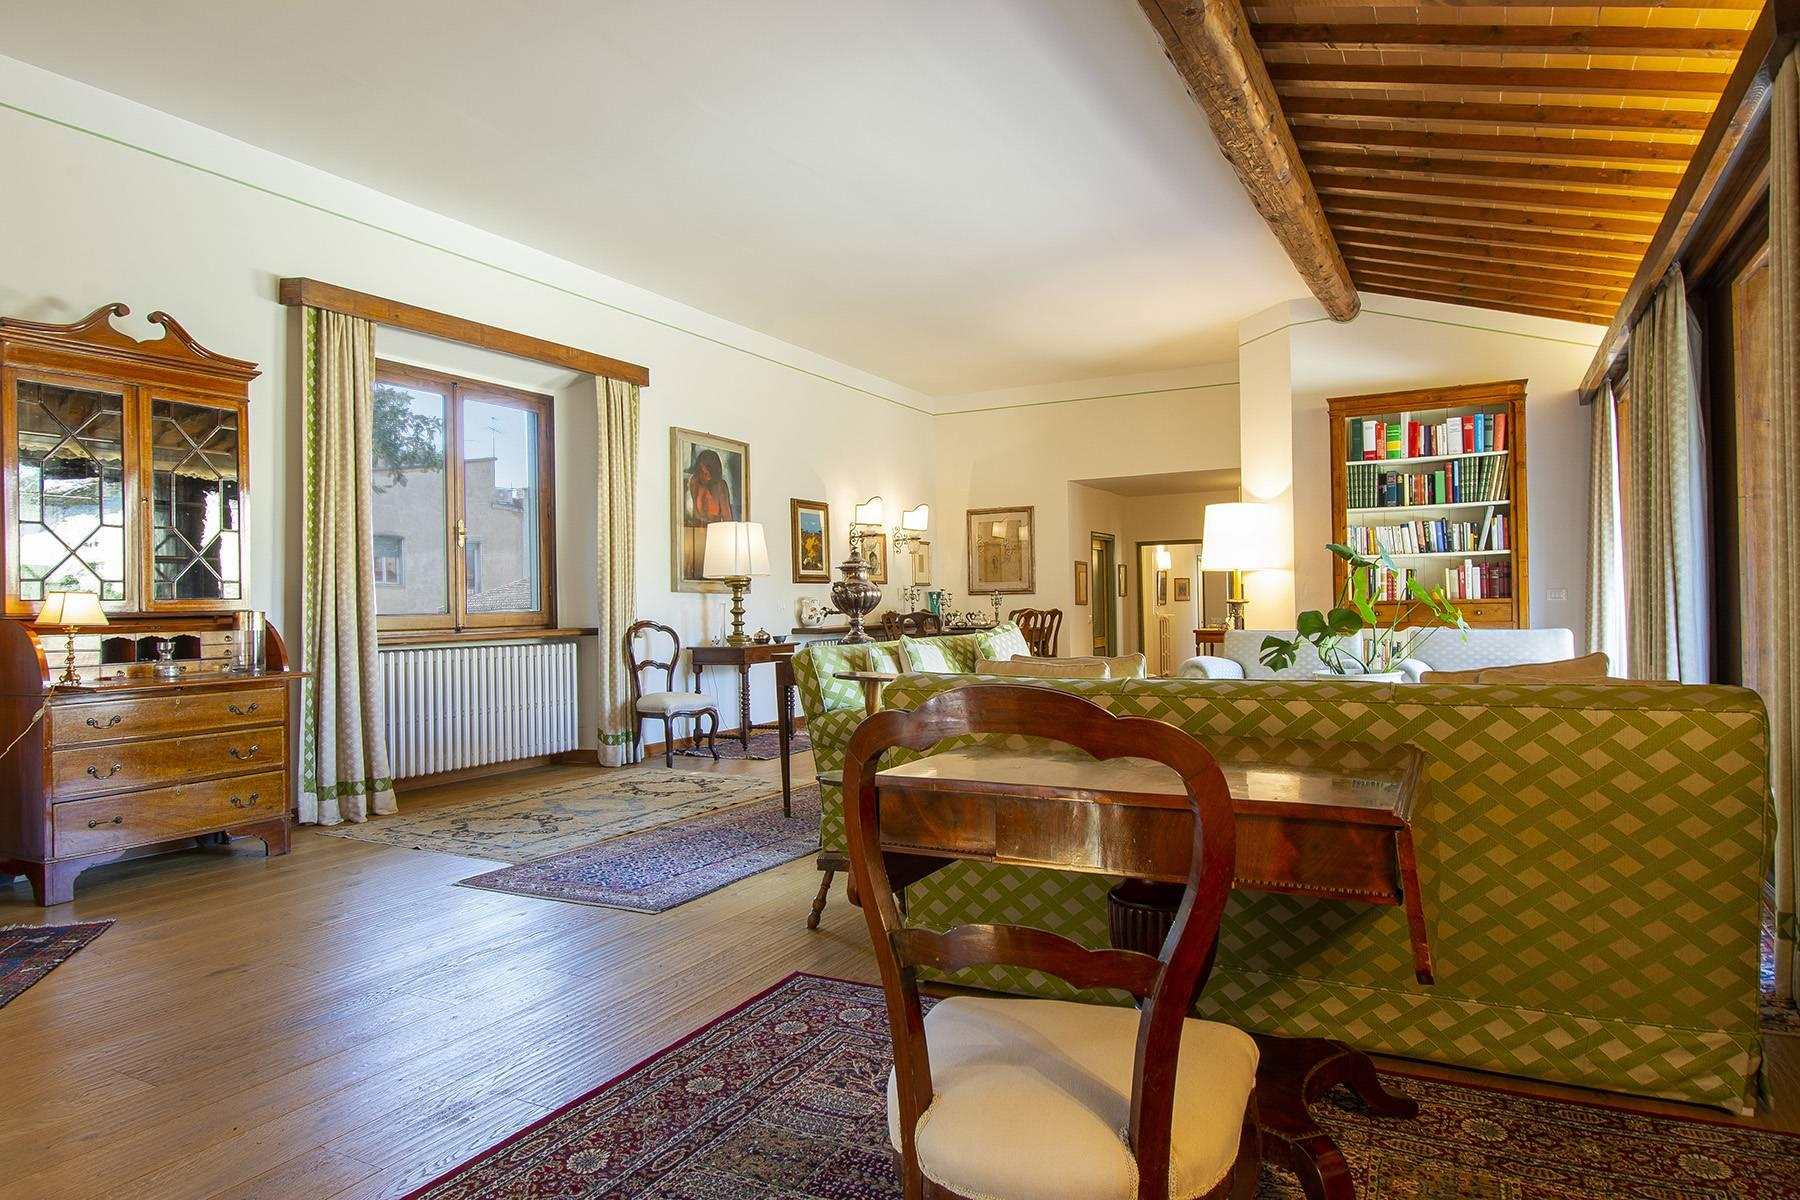 Beautiful renovated apartment with terrace close to Boboli Gardens and Poggio Imperiale - 8